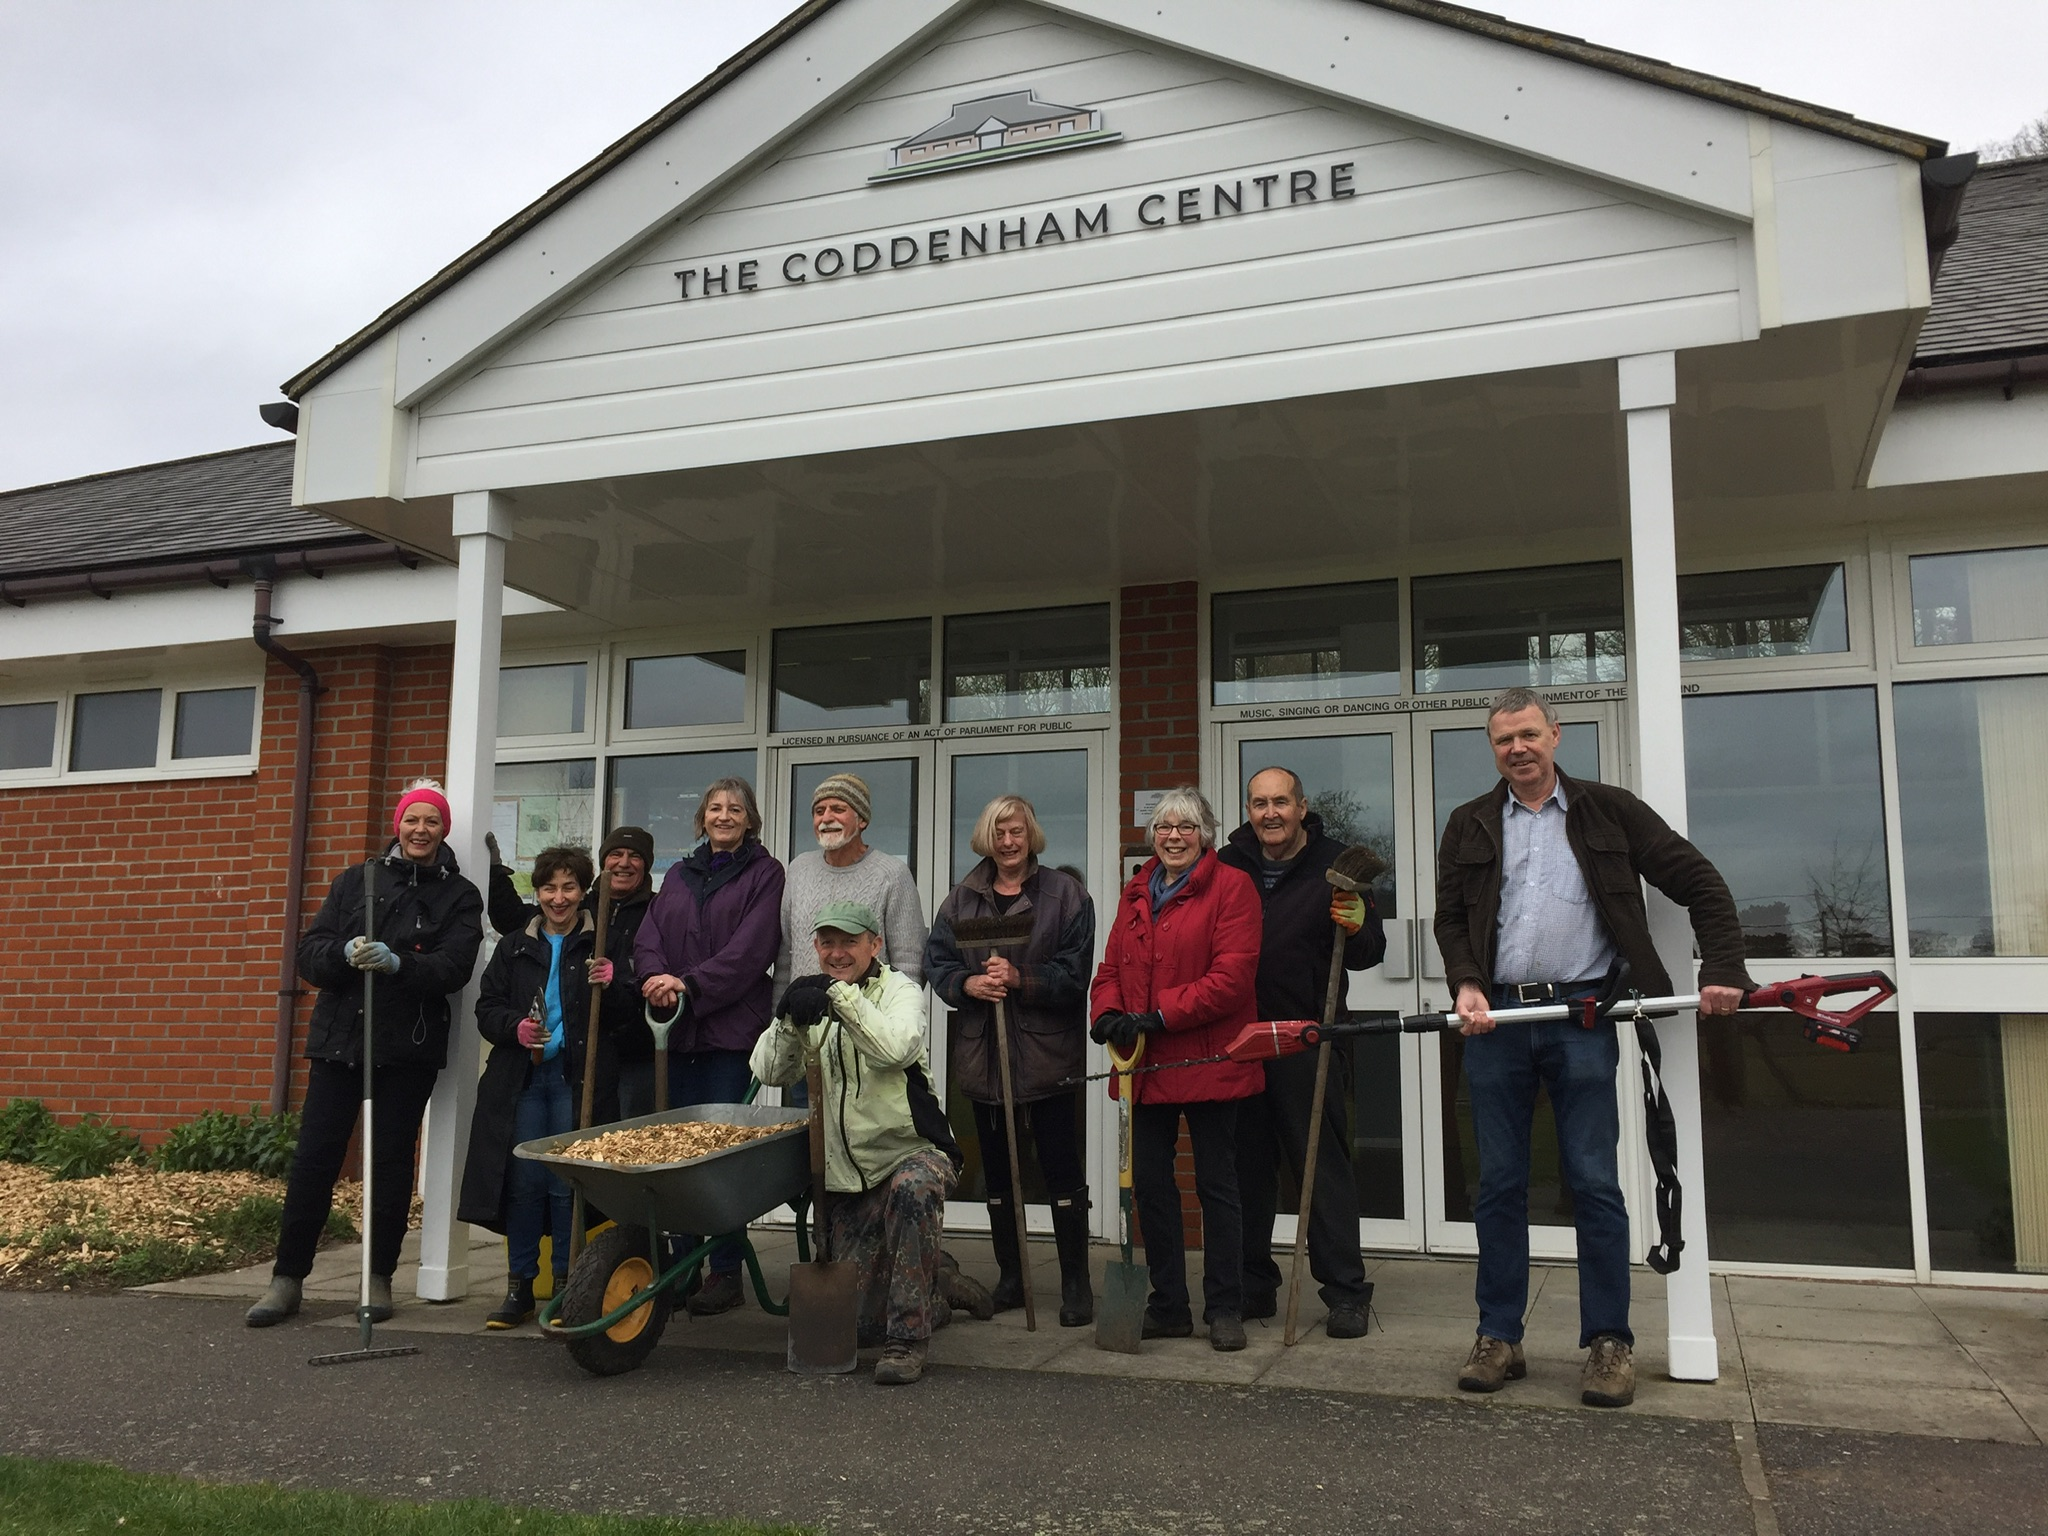 Previous Working party at the Coddenham Centre